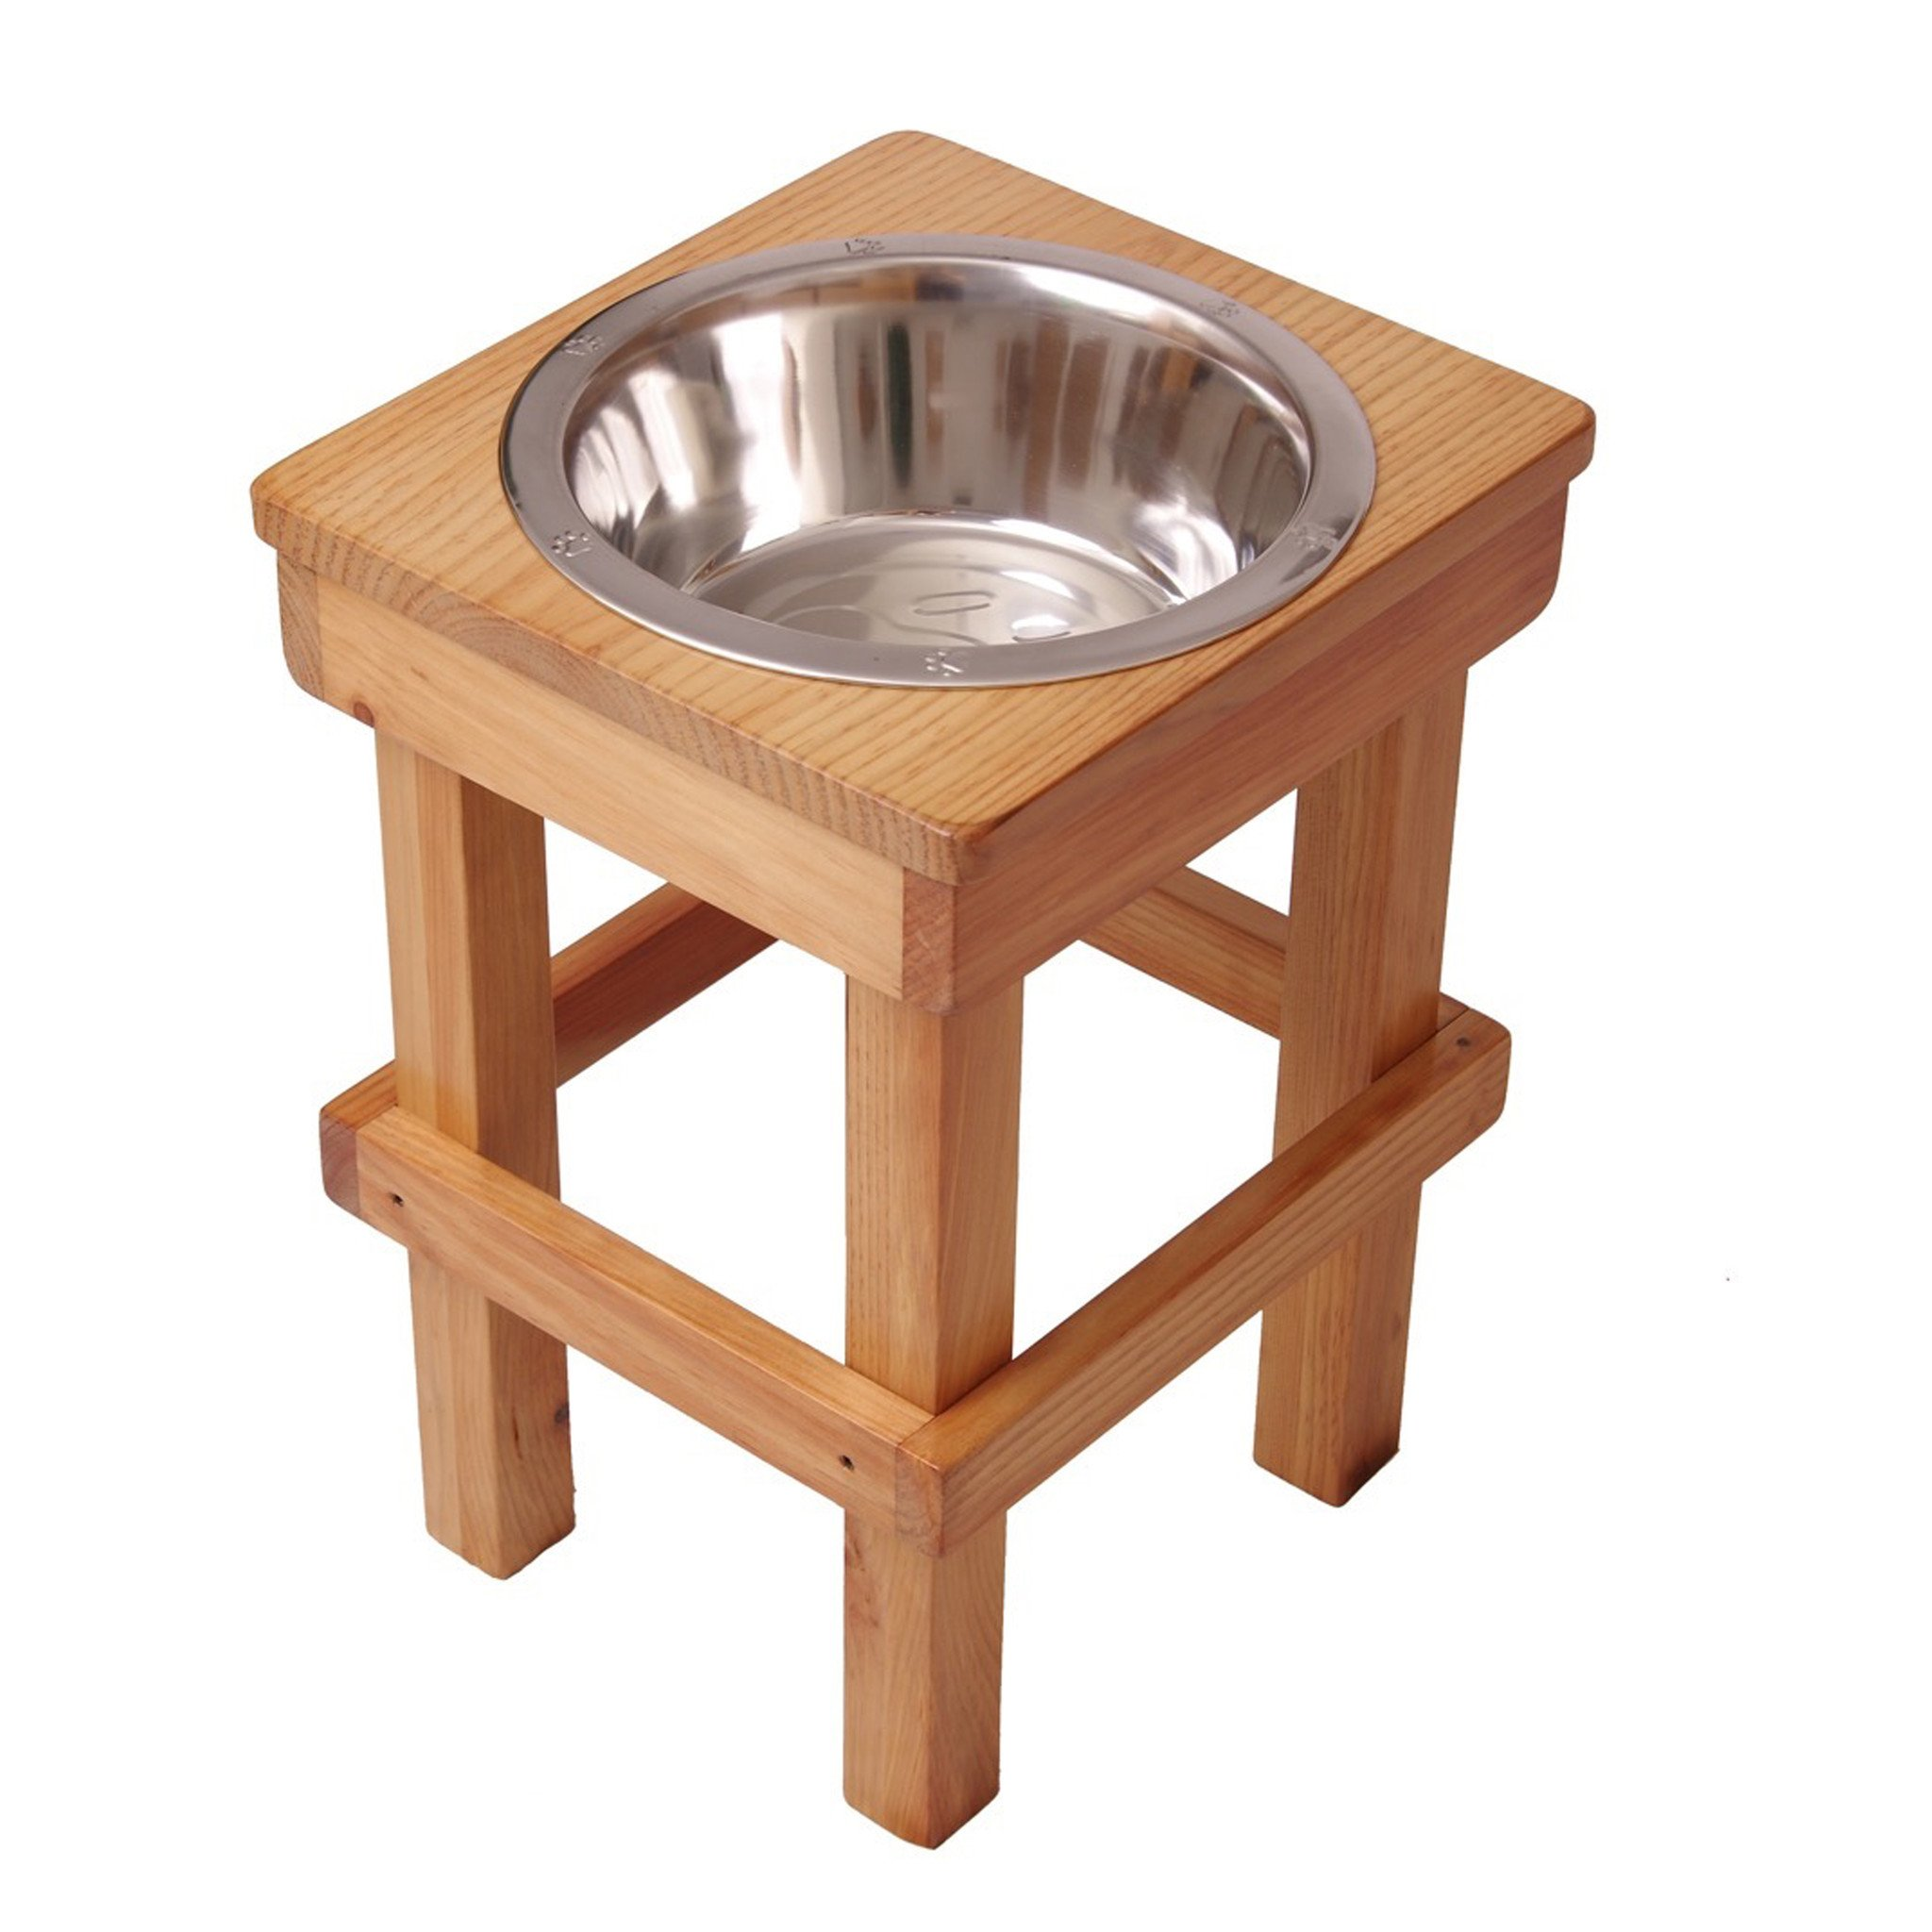 bowls ideas raised and for single statio auto charming ceramic best automatic feeders feed outdoor slow feeder elevated tips pet waterers bowl dog